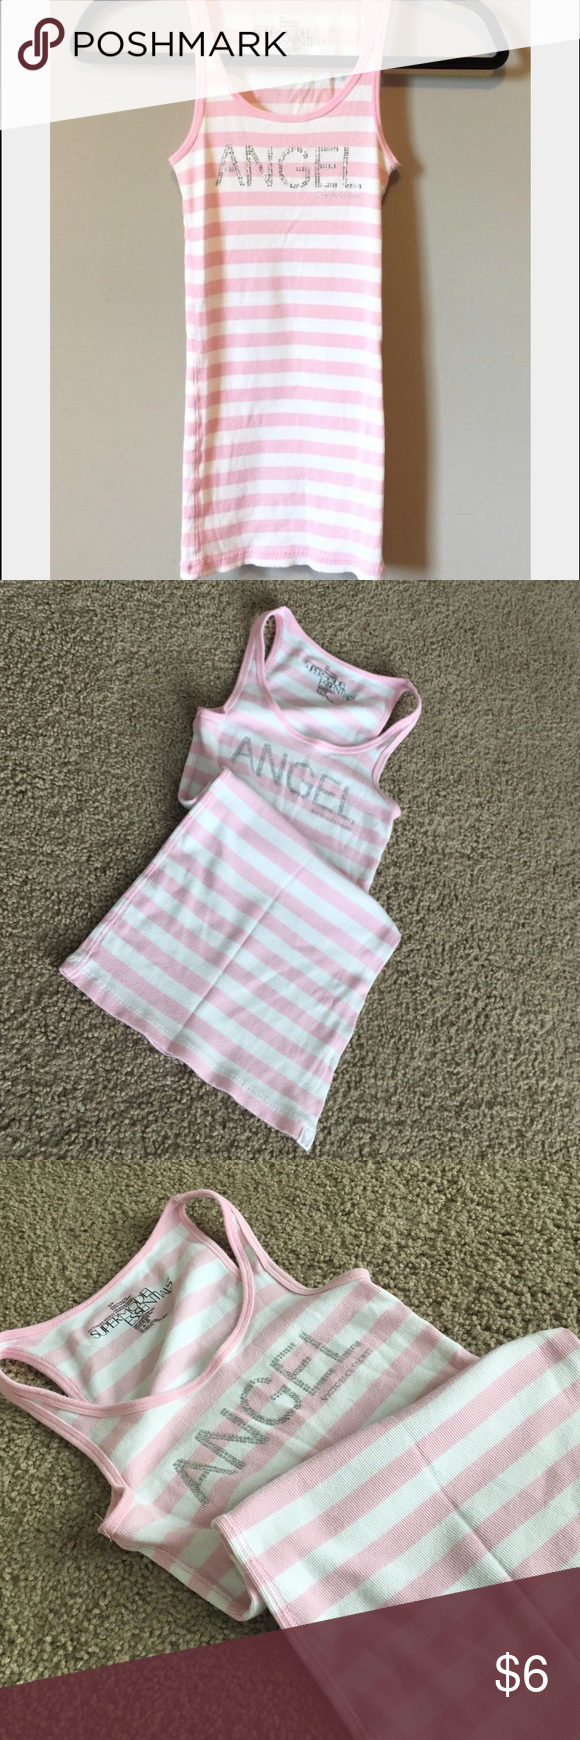 """VS lounge tank! Supermodel Essentials """"Angel"""" lounge tank. Light pink and white striped. Adorable, and very soft. Great condition. Victoria's Secret Tops Tank Tops"""